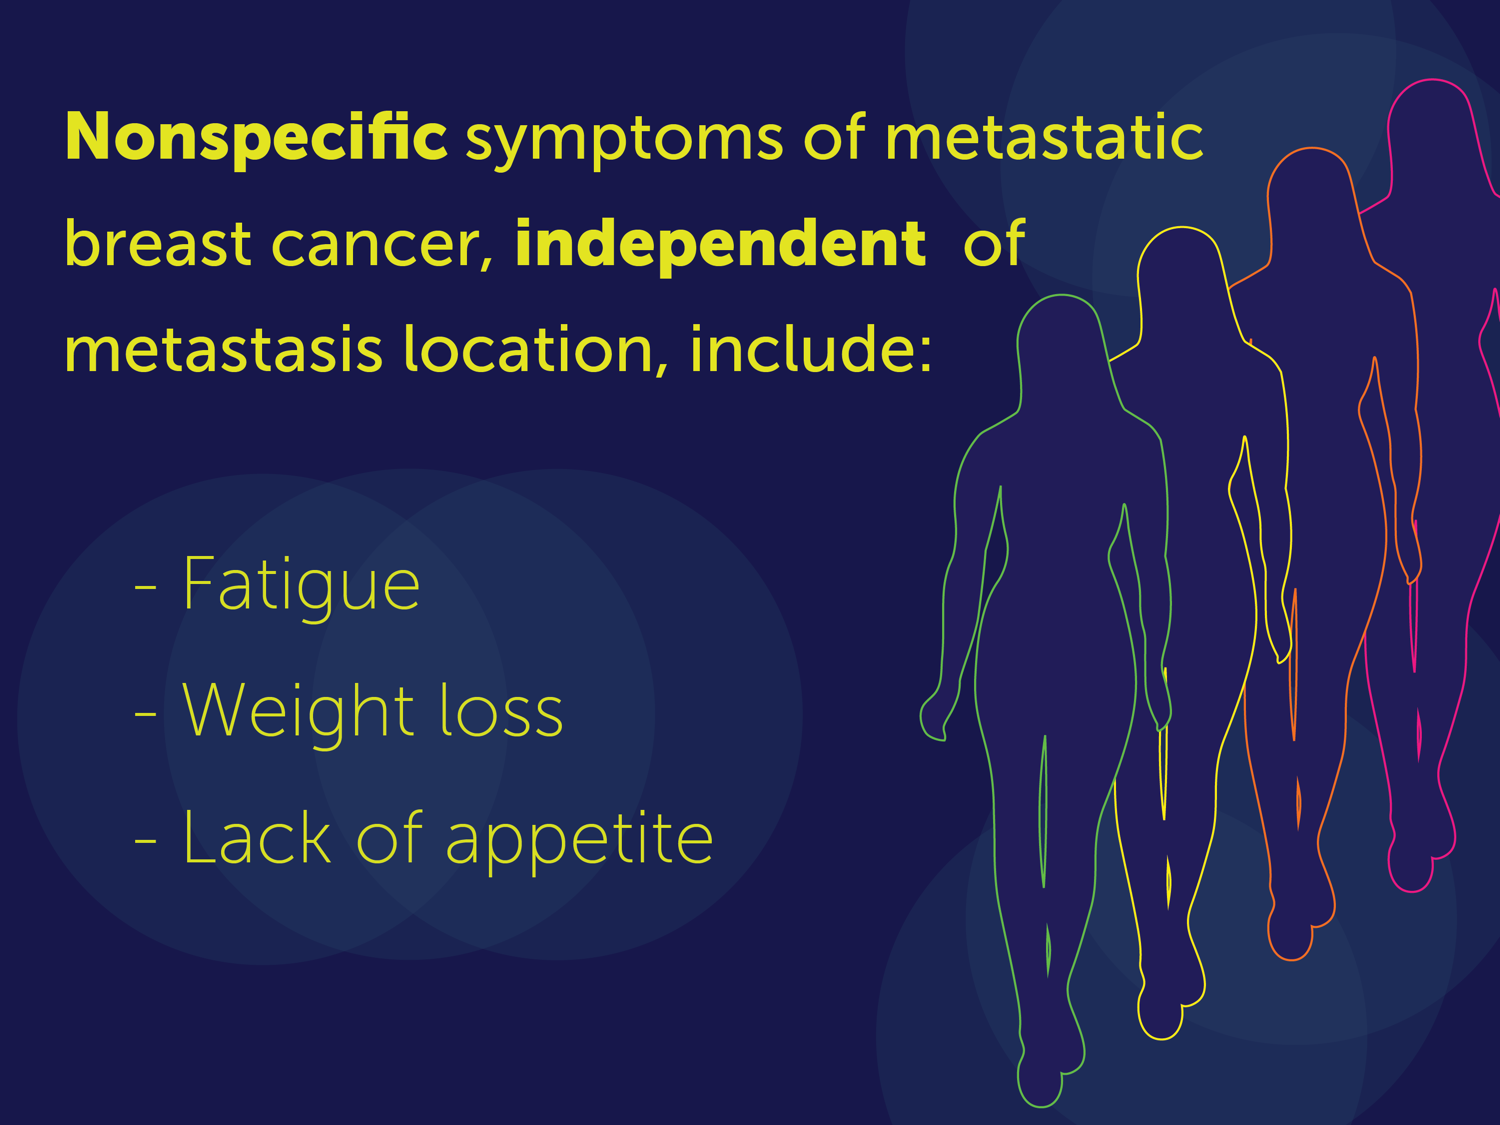 Nonspecific symptoms of metastatic breast cancer, independent of metastatic location, include fatigue, weight loss, and lack of appetite.